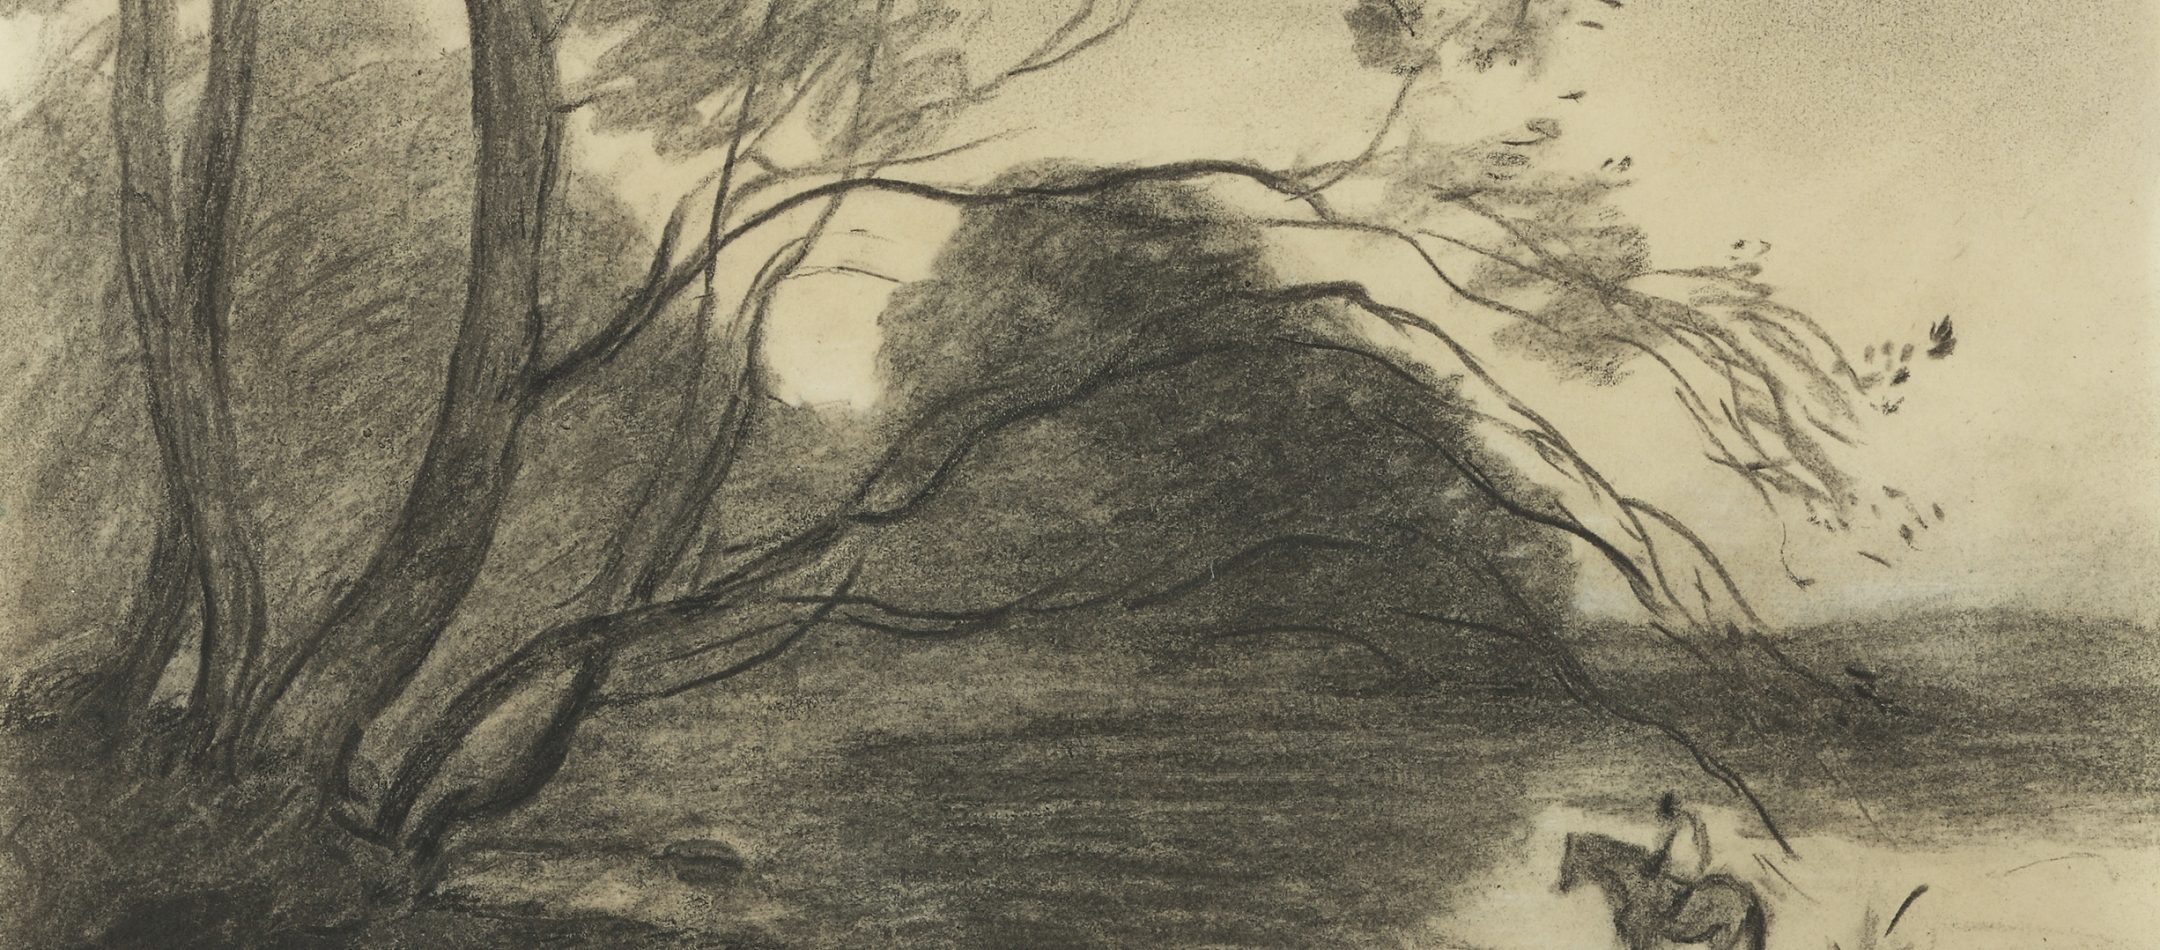 The Ford under the Large Tree, c. 1864, Charcoal on paper; 7 1/8 x 11 3/8 inches